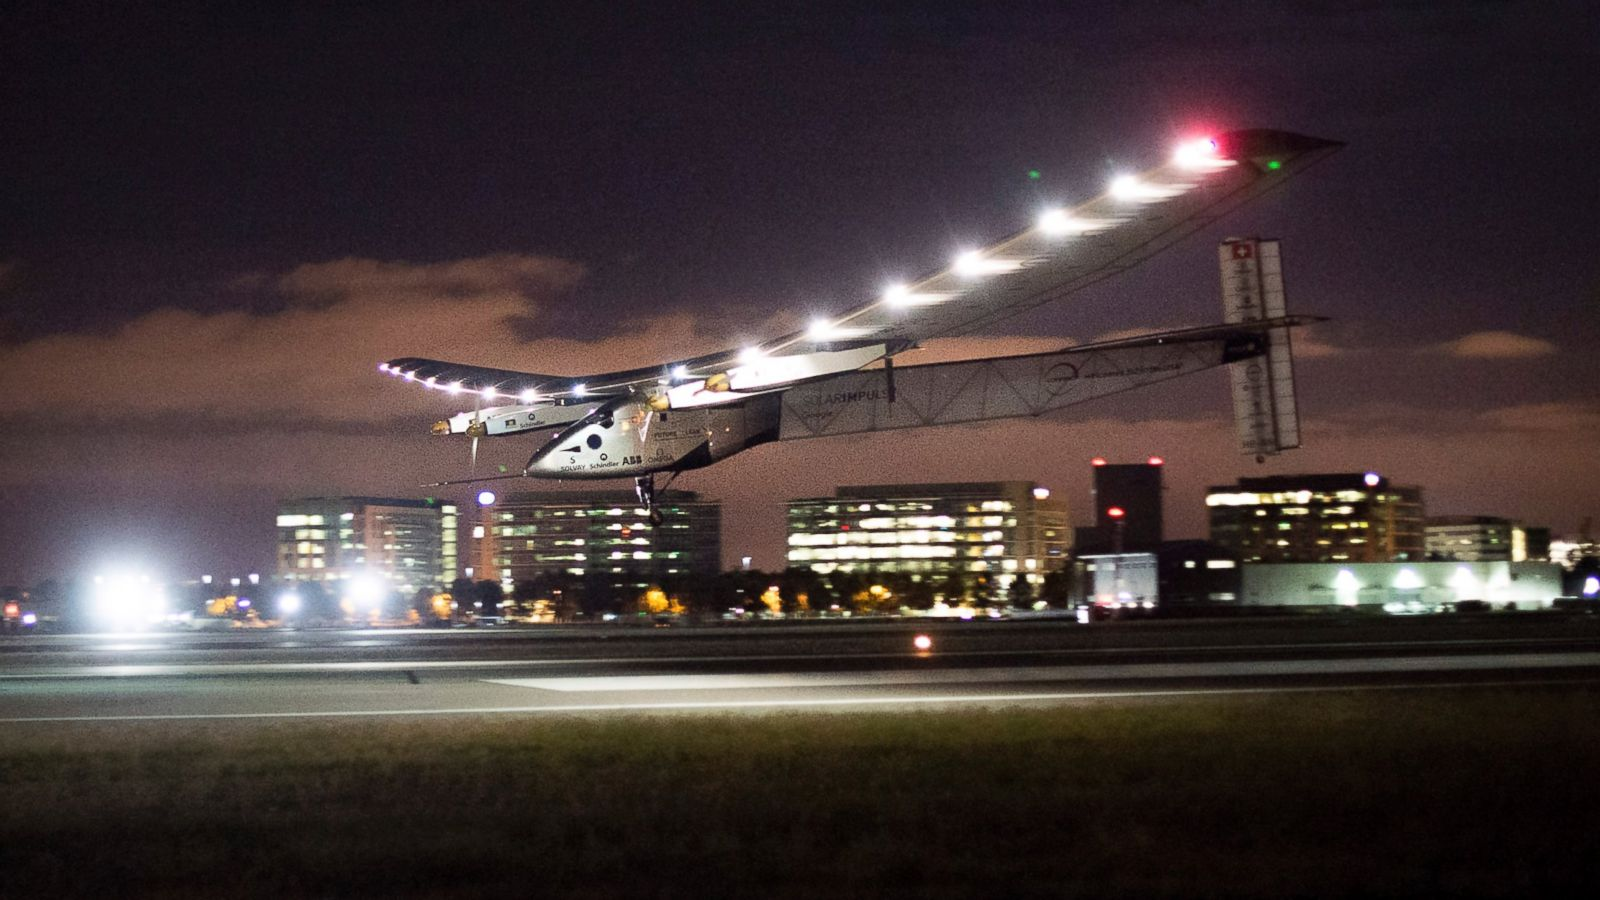 Solarplane Pool Willhaben Solar Powered Plane Successfully Crosses Pacific Ocean Lands In